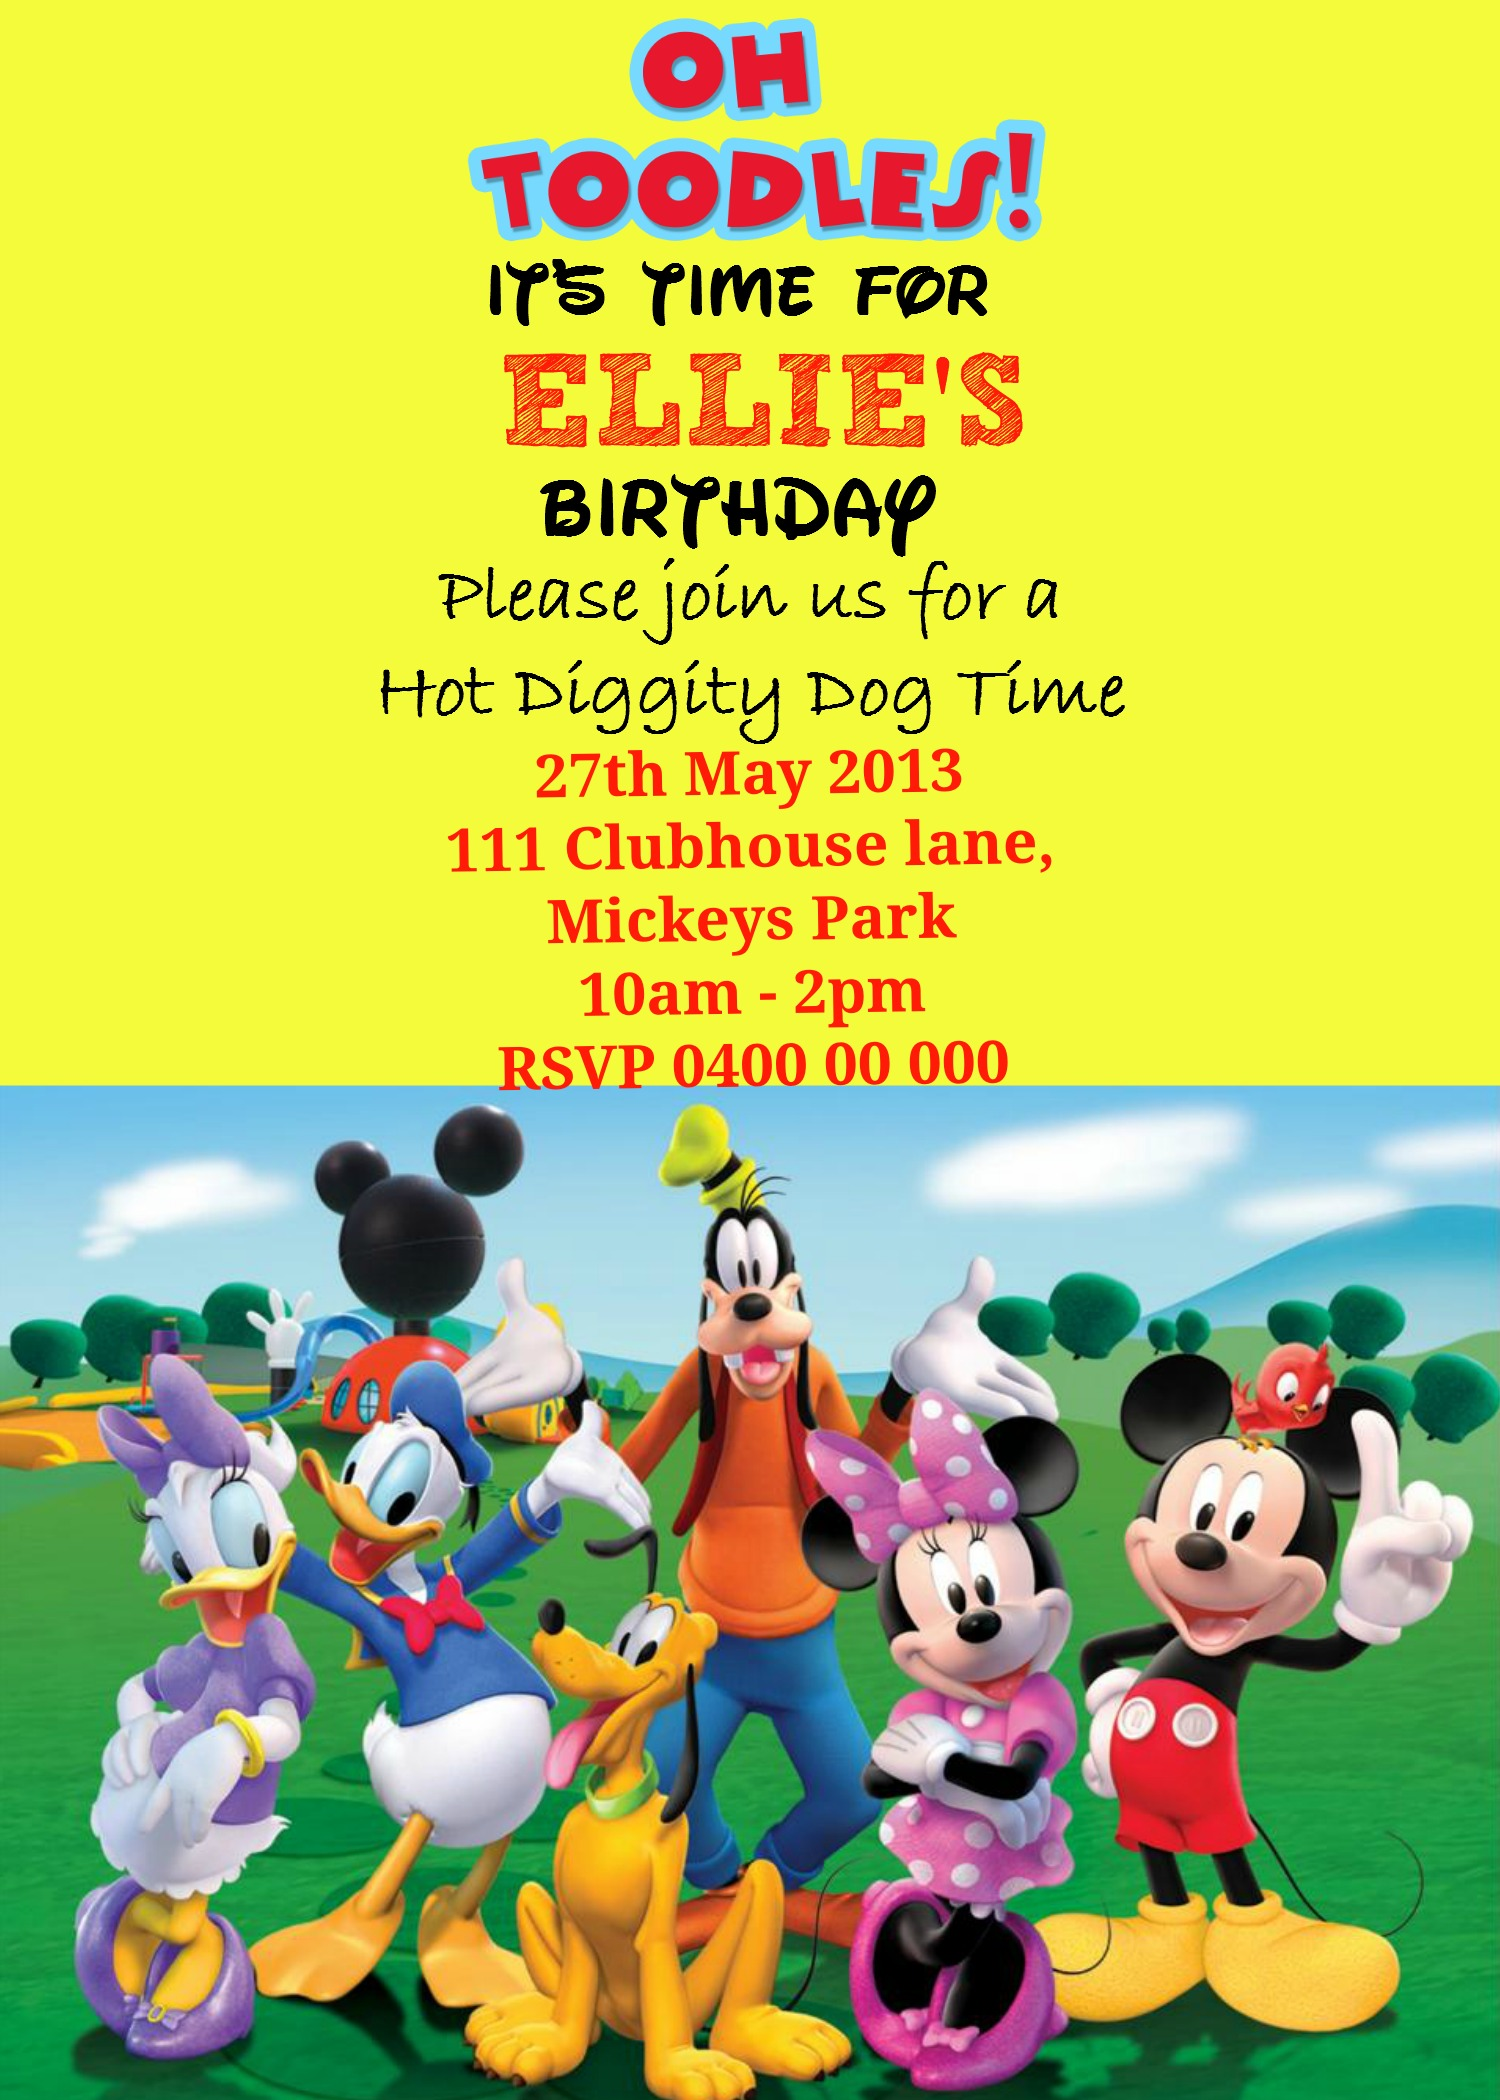 How to make a Mickey Mouse digital invitation with free image